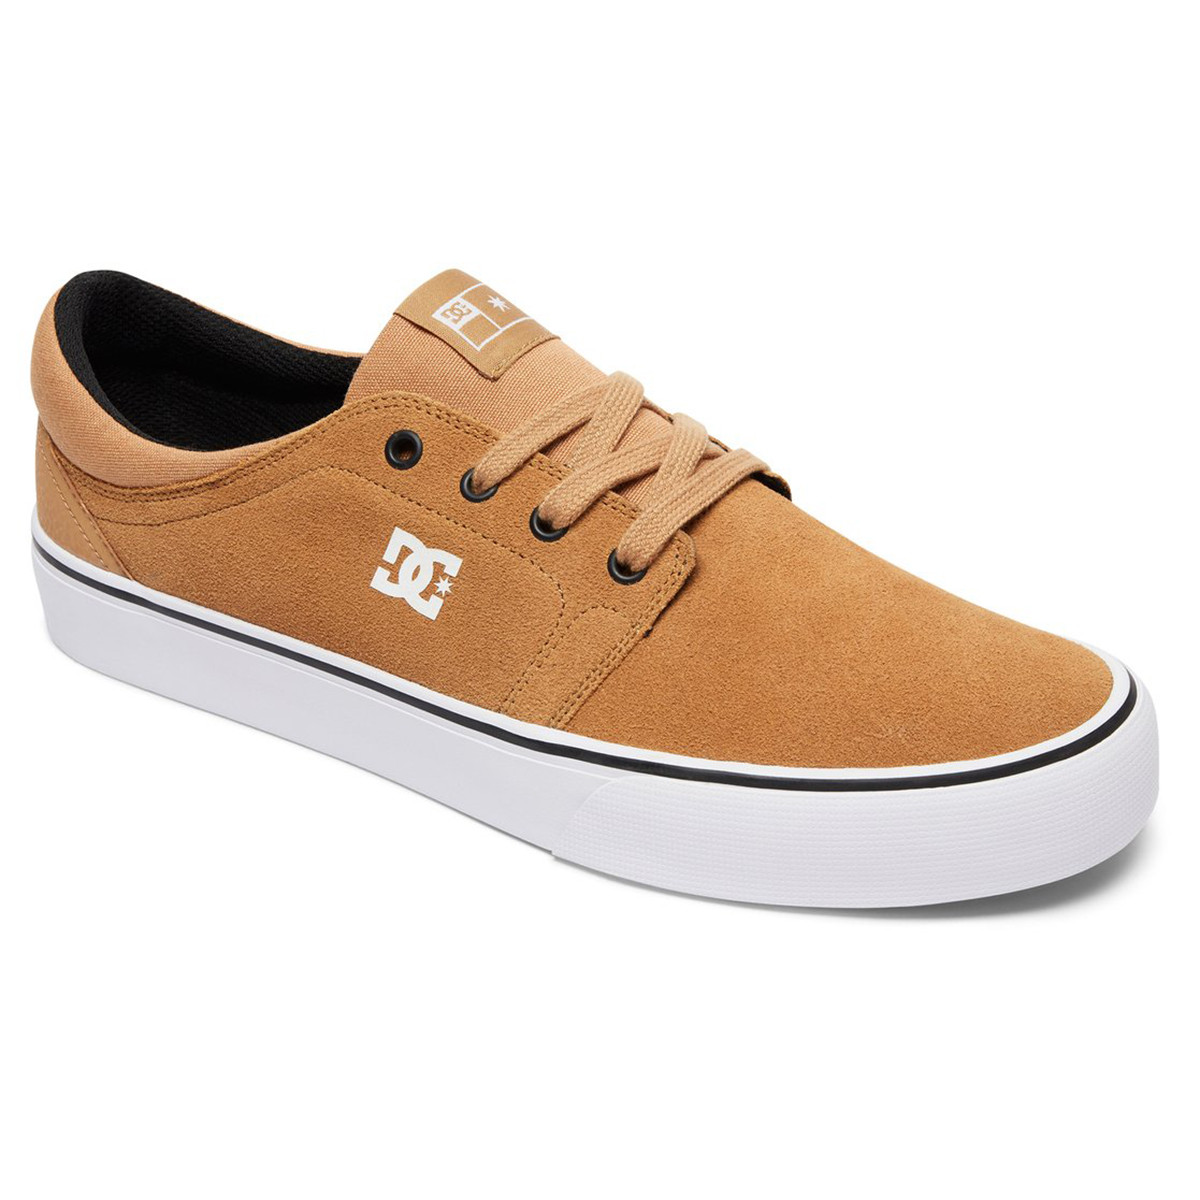 Homme Dc Marron De Pas Shoes Chaussure Chaussures Trase S Cher tEwOBqn46